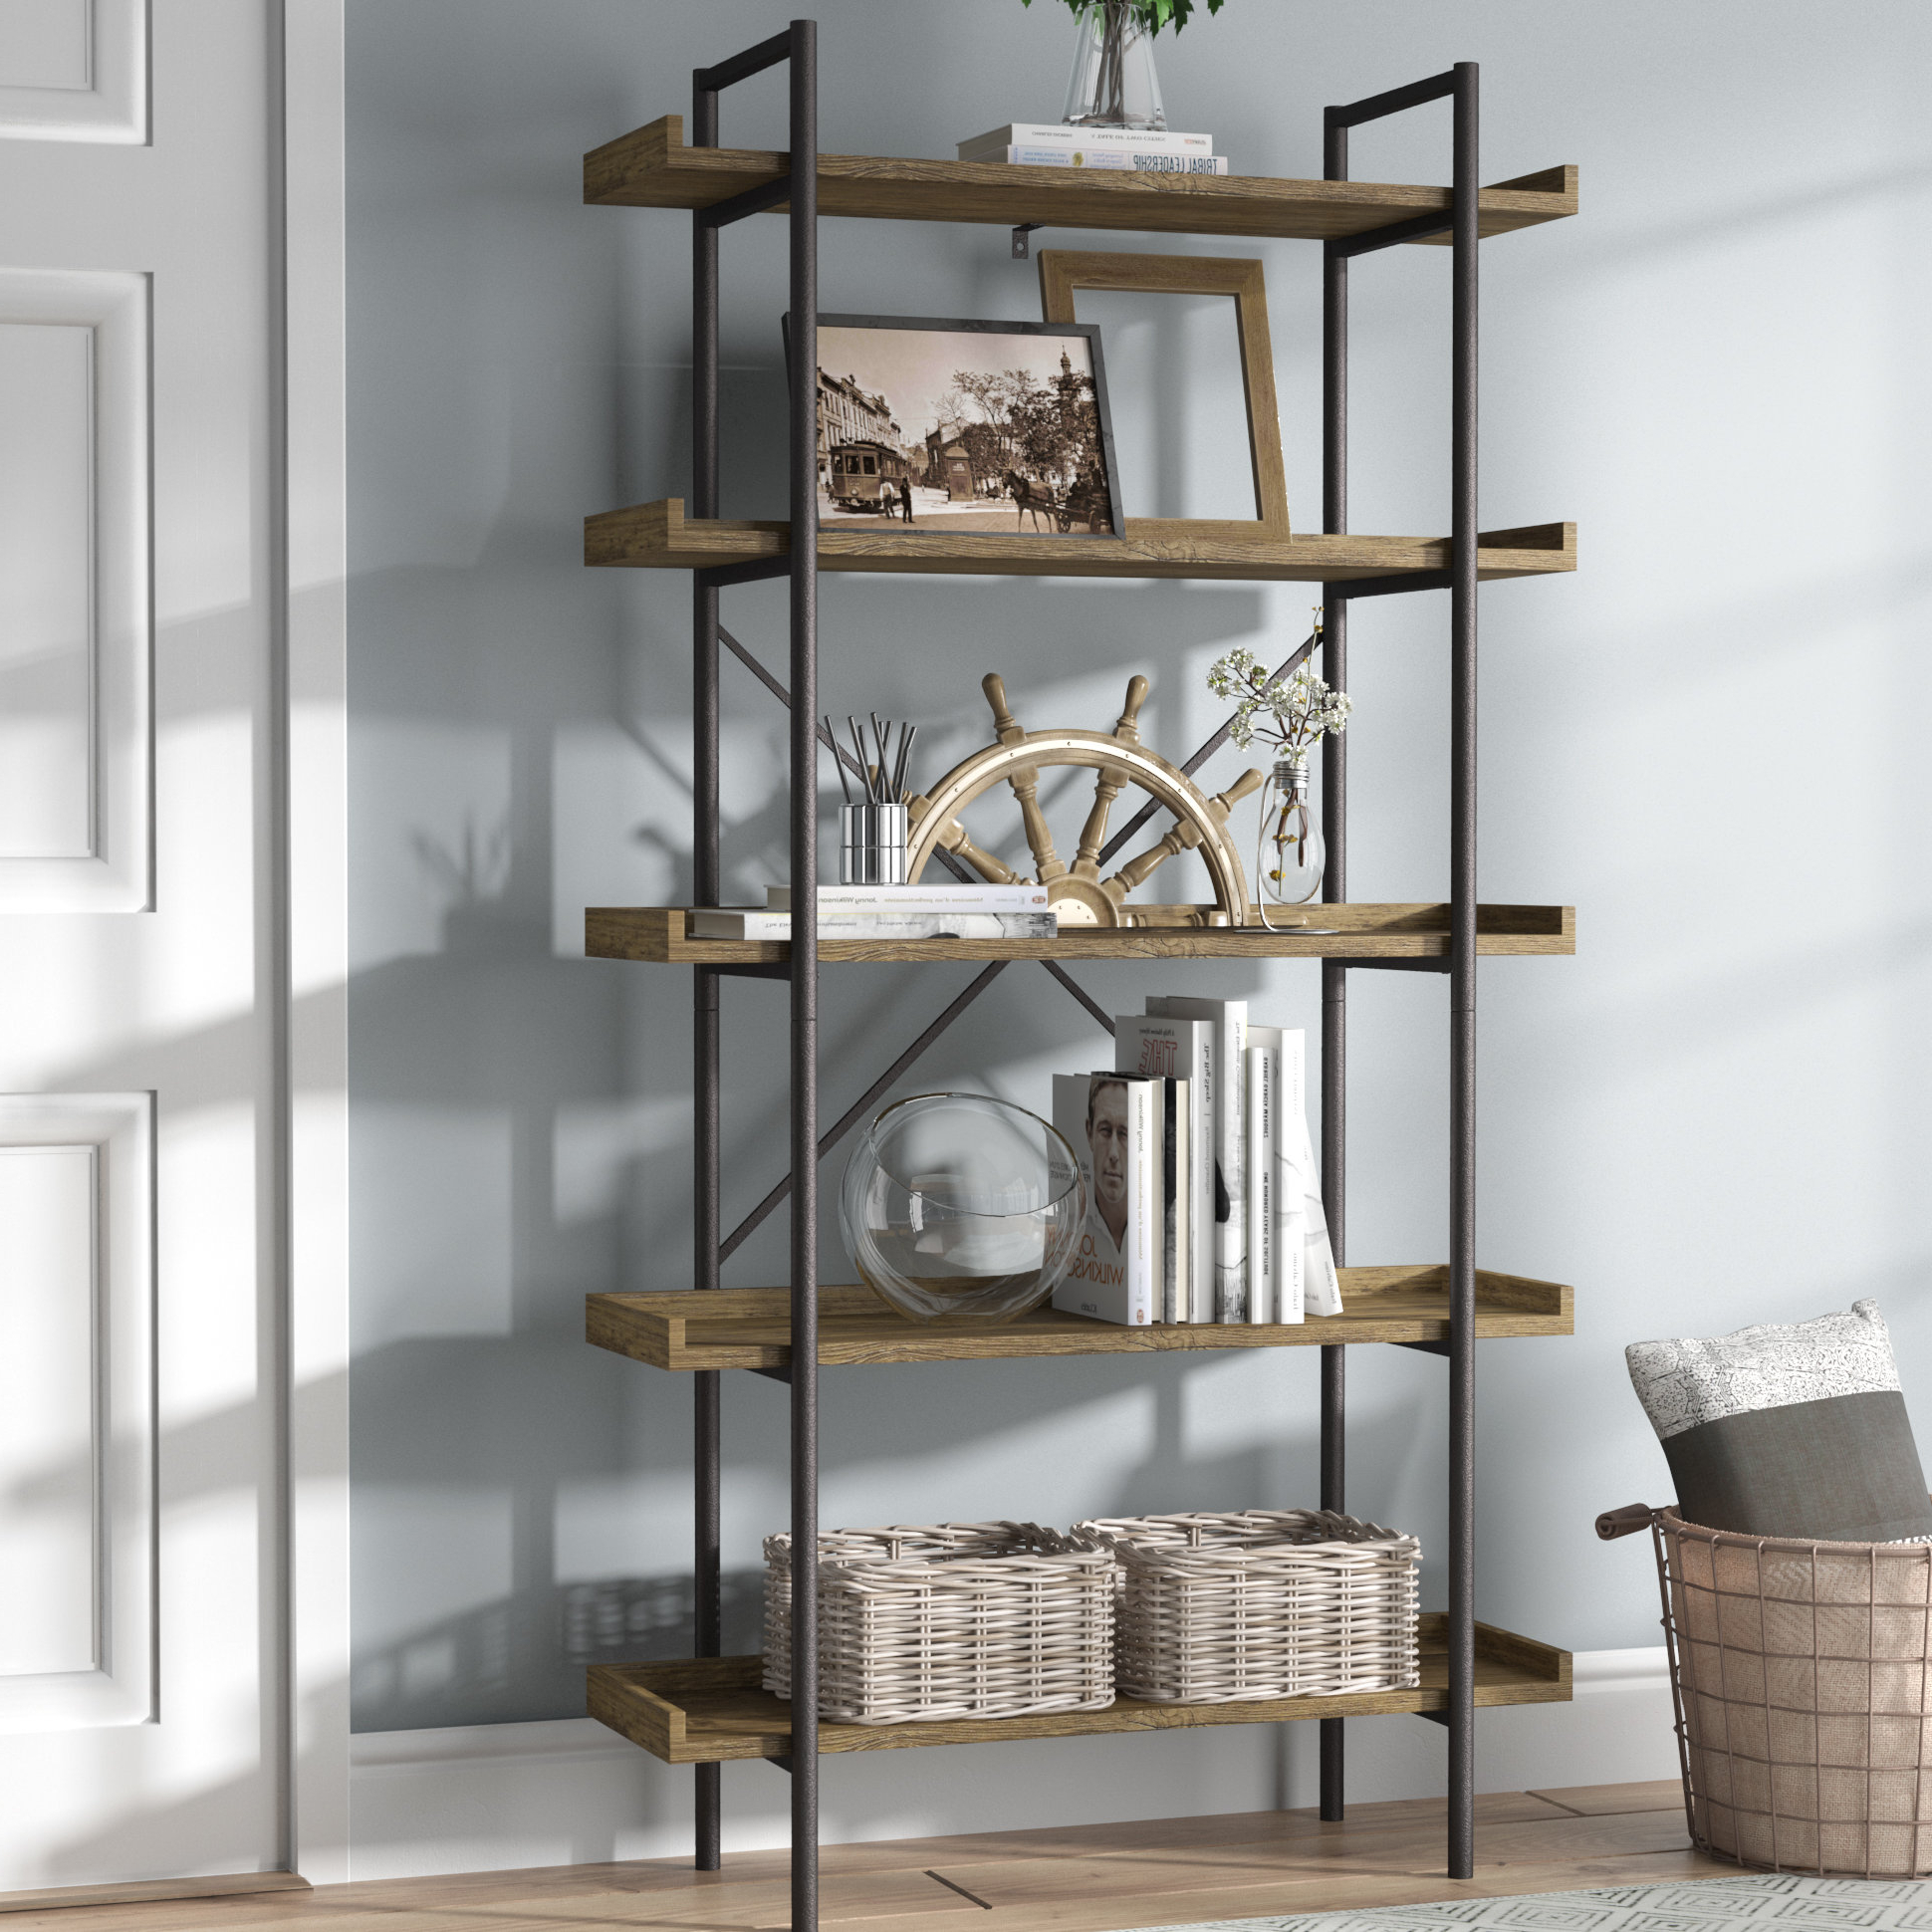 Most Recent Swindell Etagere Bookcase Regarding Ebba Etagere Bookcases (View 4 of 20)